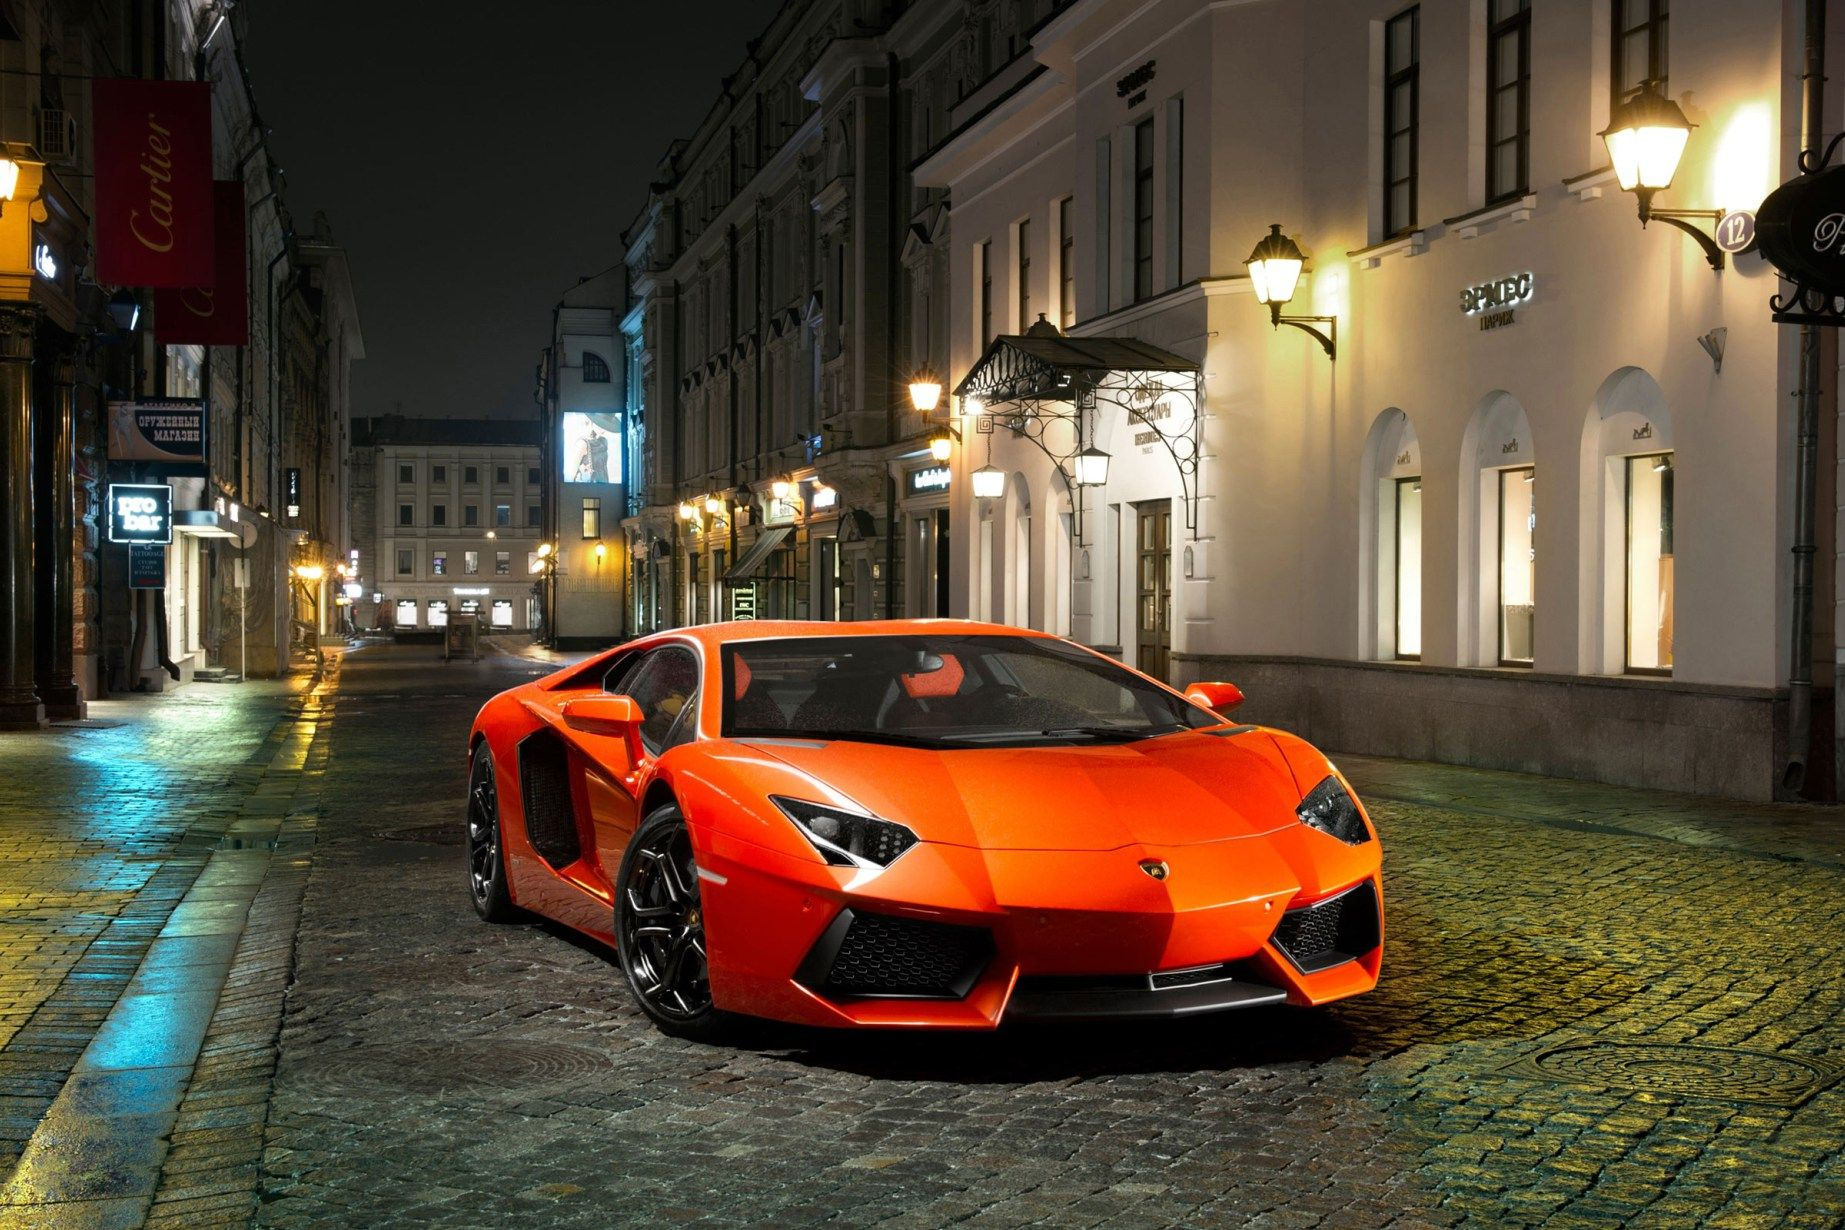 Download Lamborghini Aventador Lp700 Cars 4k Hd Wallpapers Images